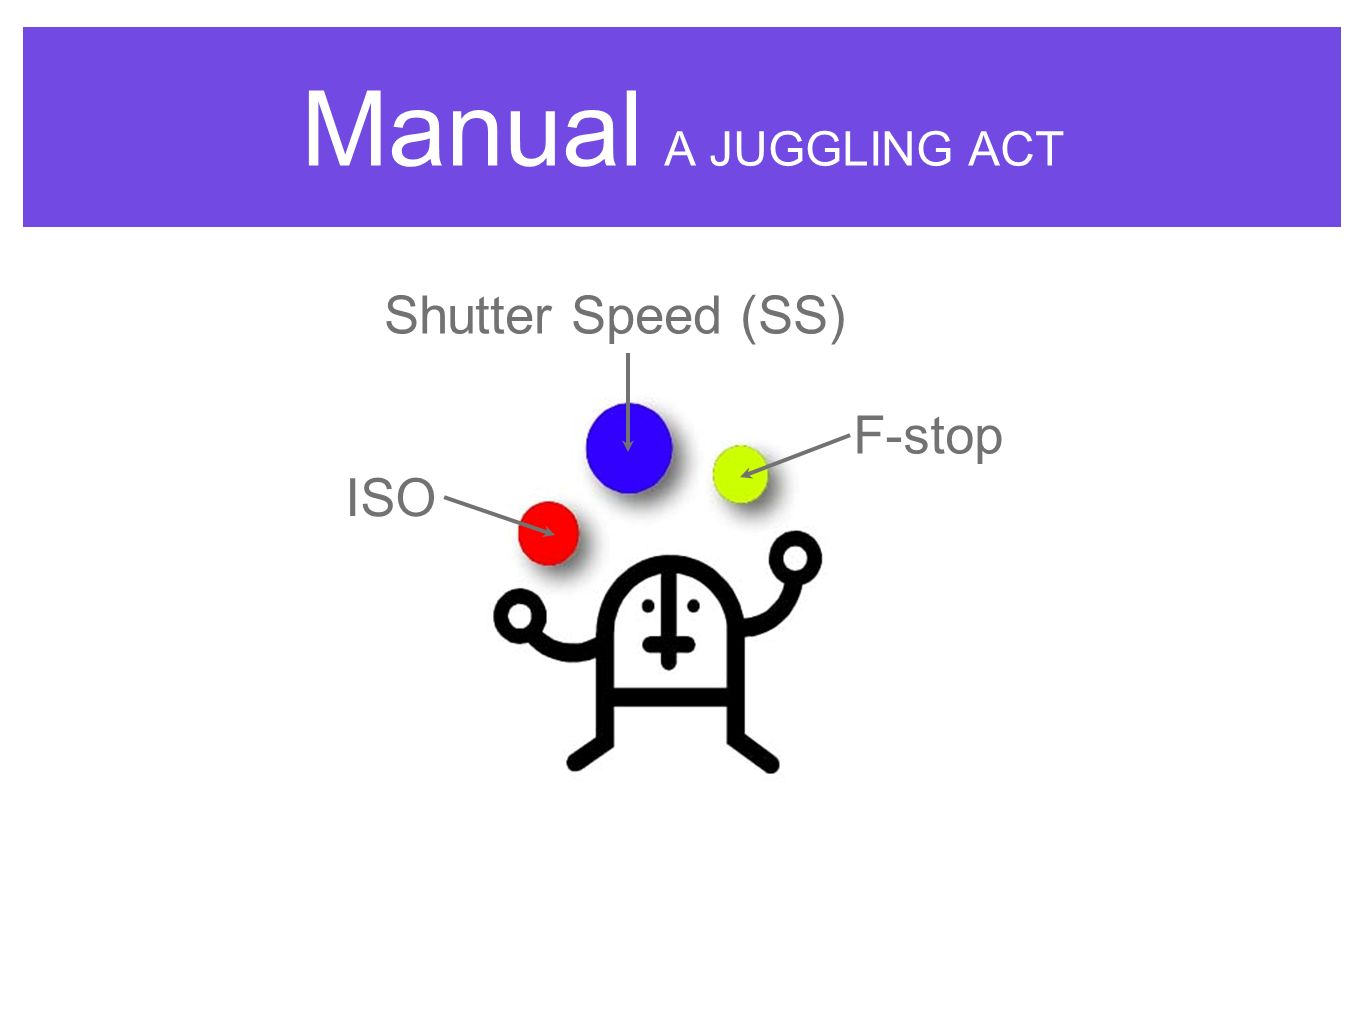 Manual A JUGGLING ACT ISO Shutter Speed (SS) F-stop